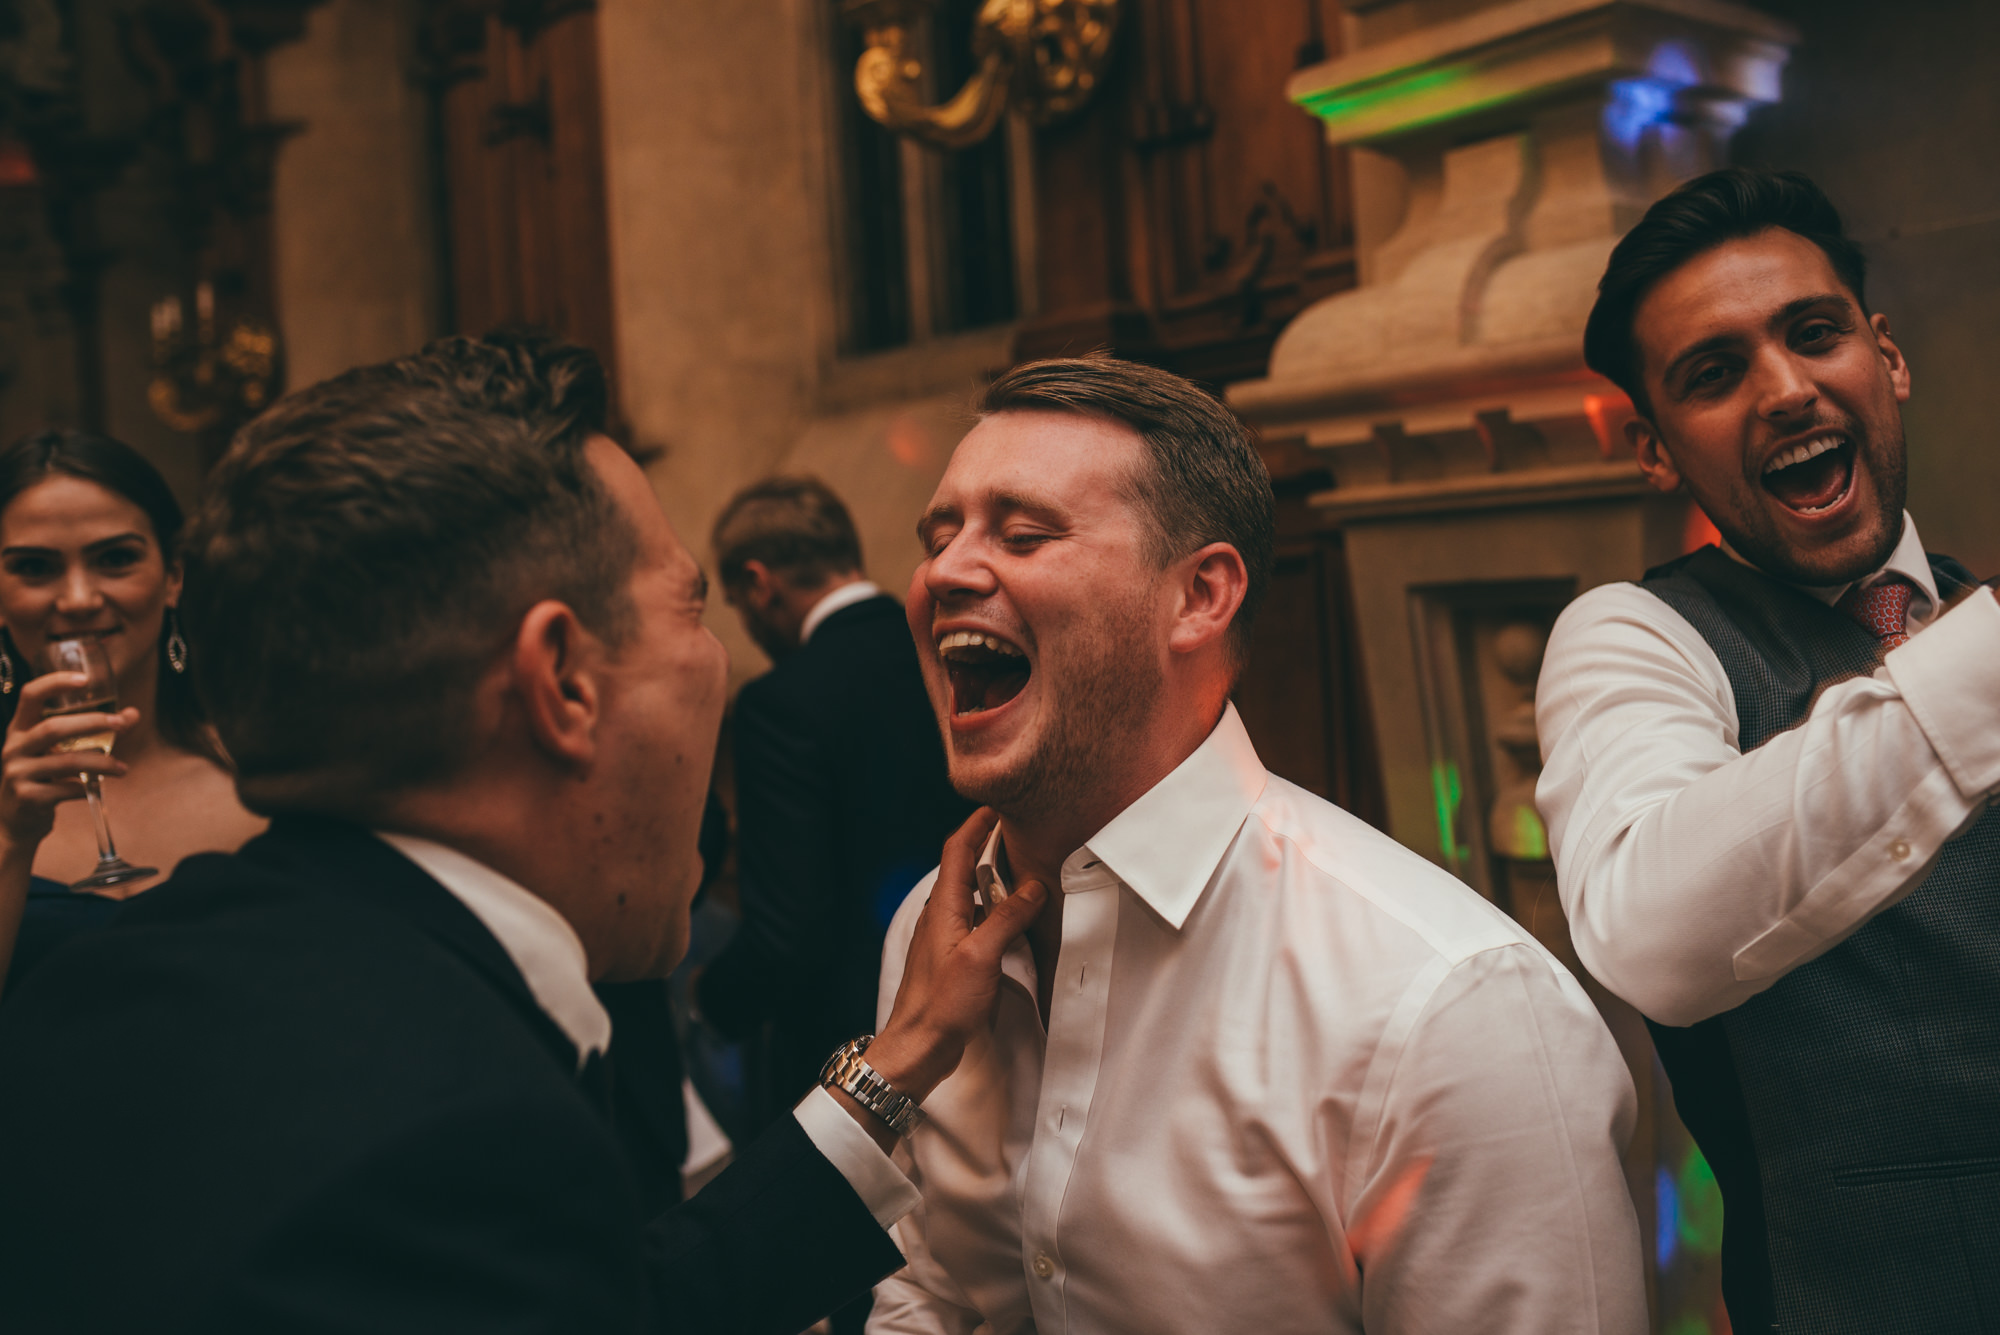 groom and his friends dancing